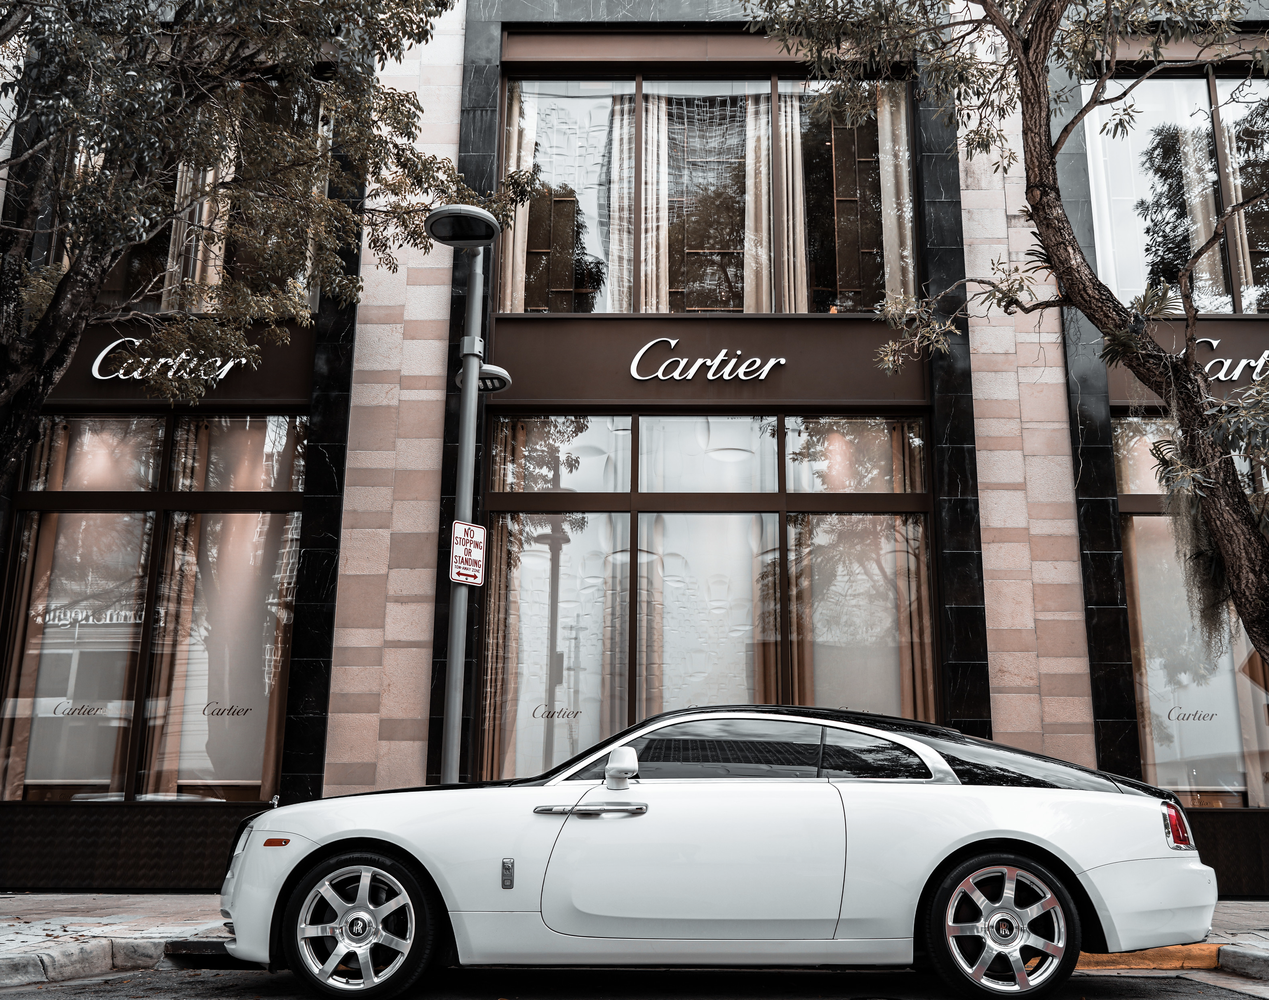 Image #3 of our  Rolls Royce Wraith    In Miami Fort Lauderdale Palm Beach South Florida